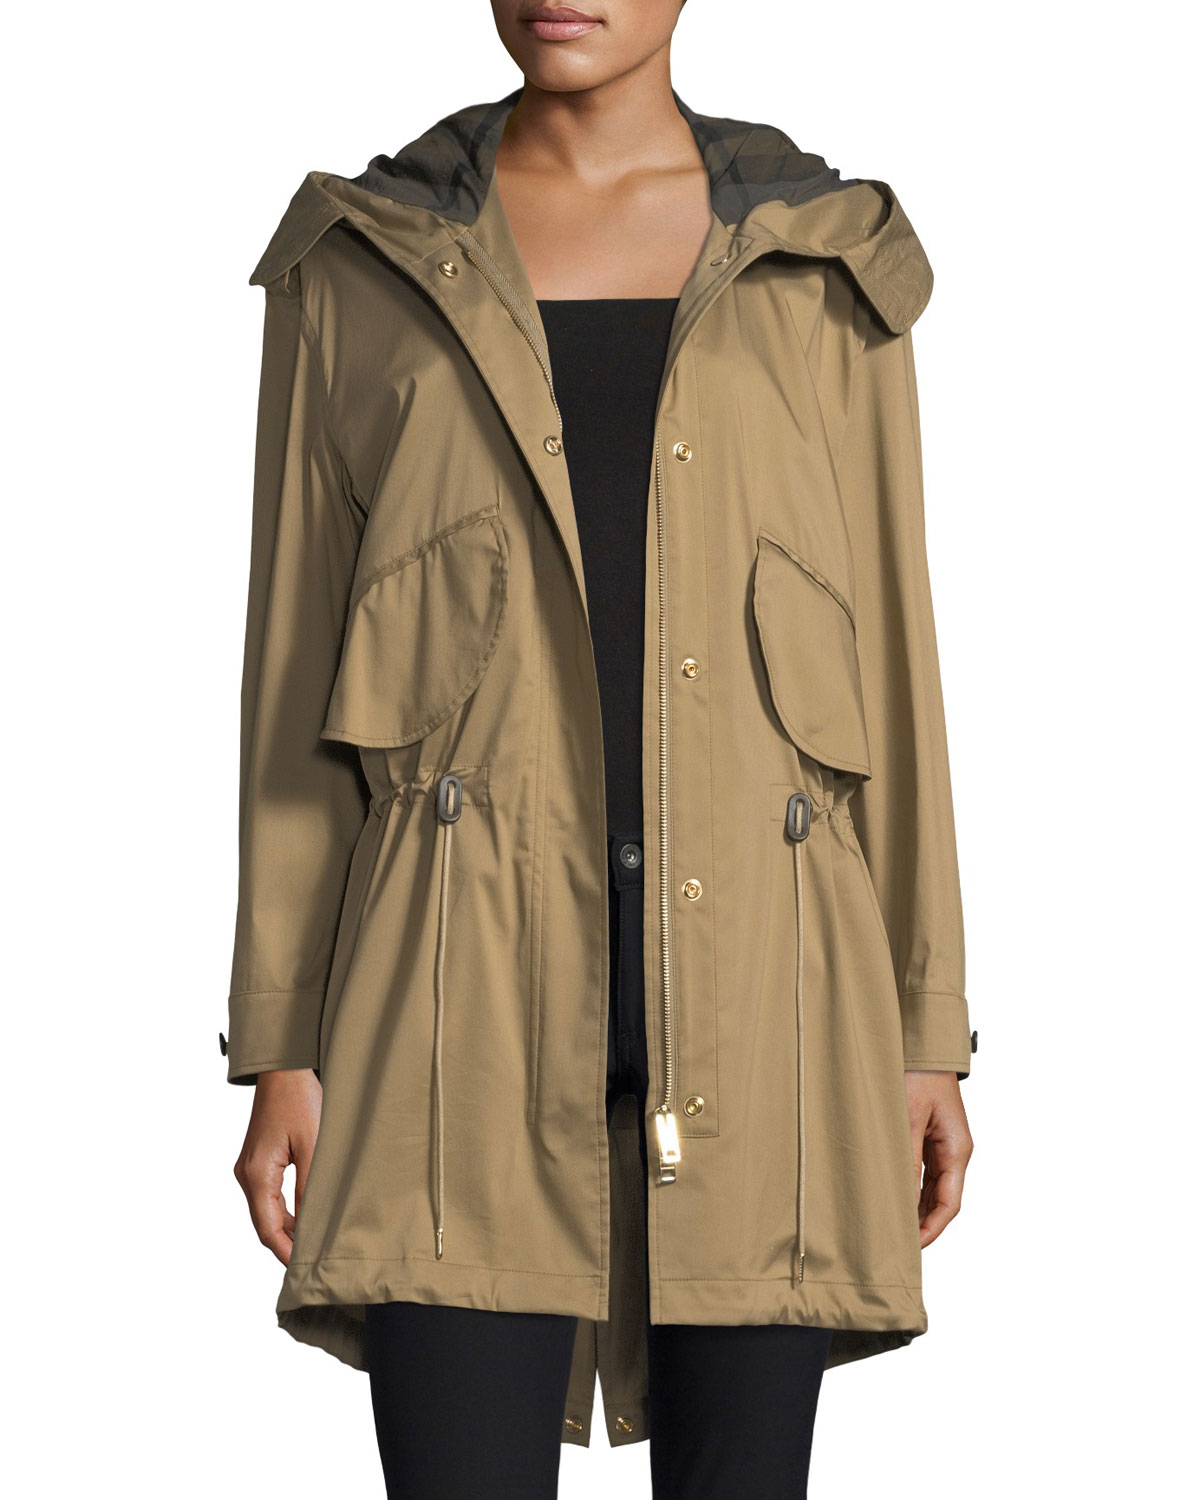 Chiltondale Hooded Drawstring Parka